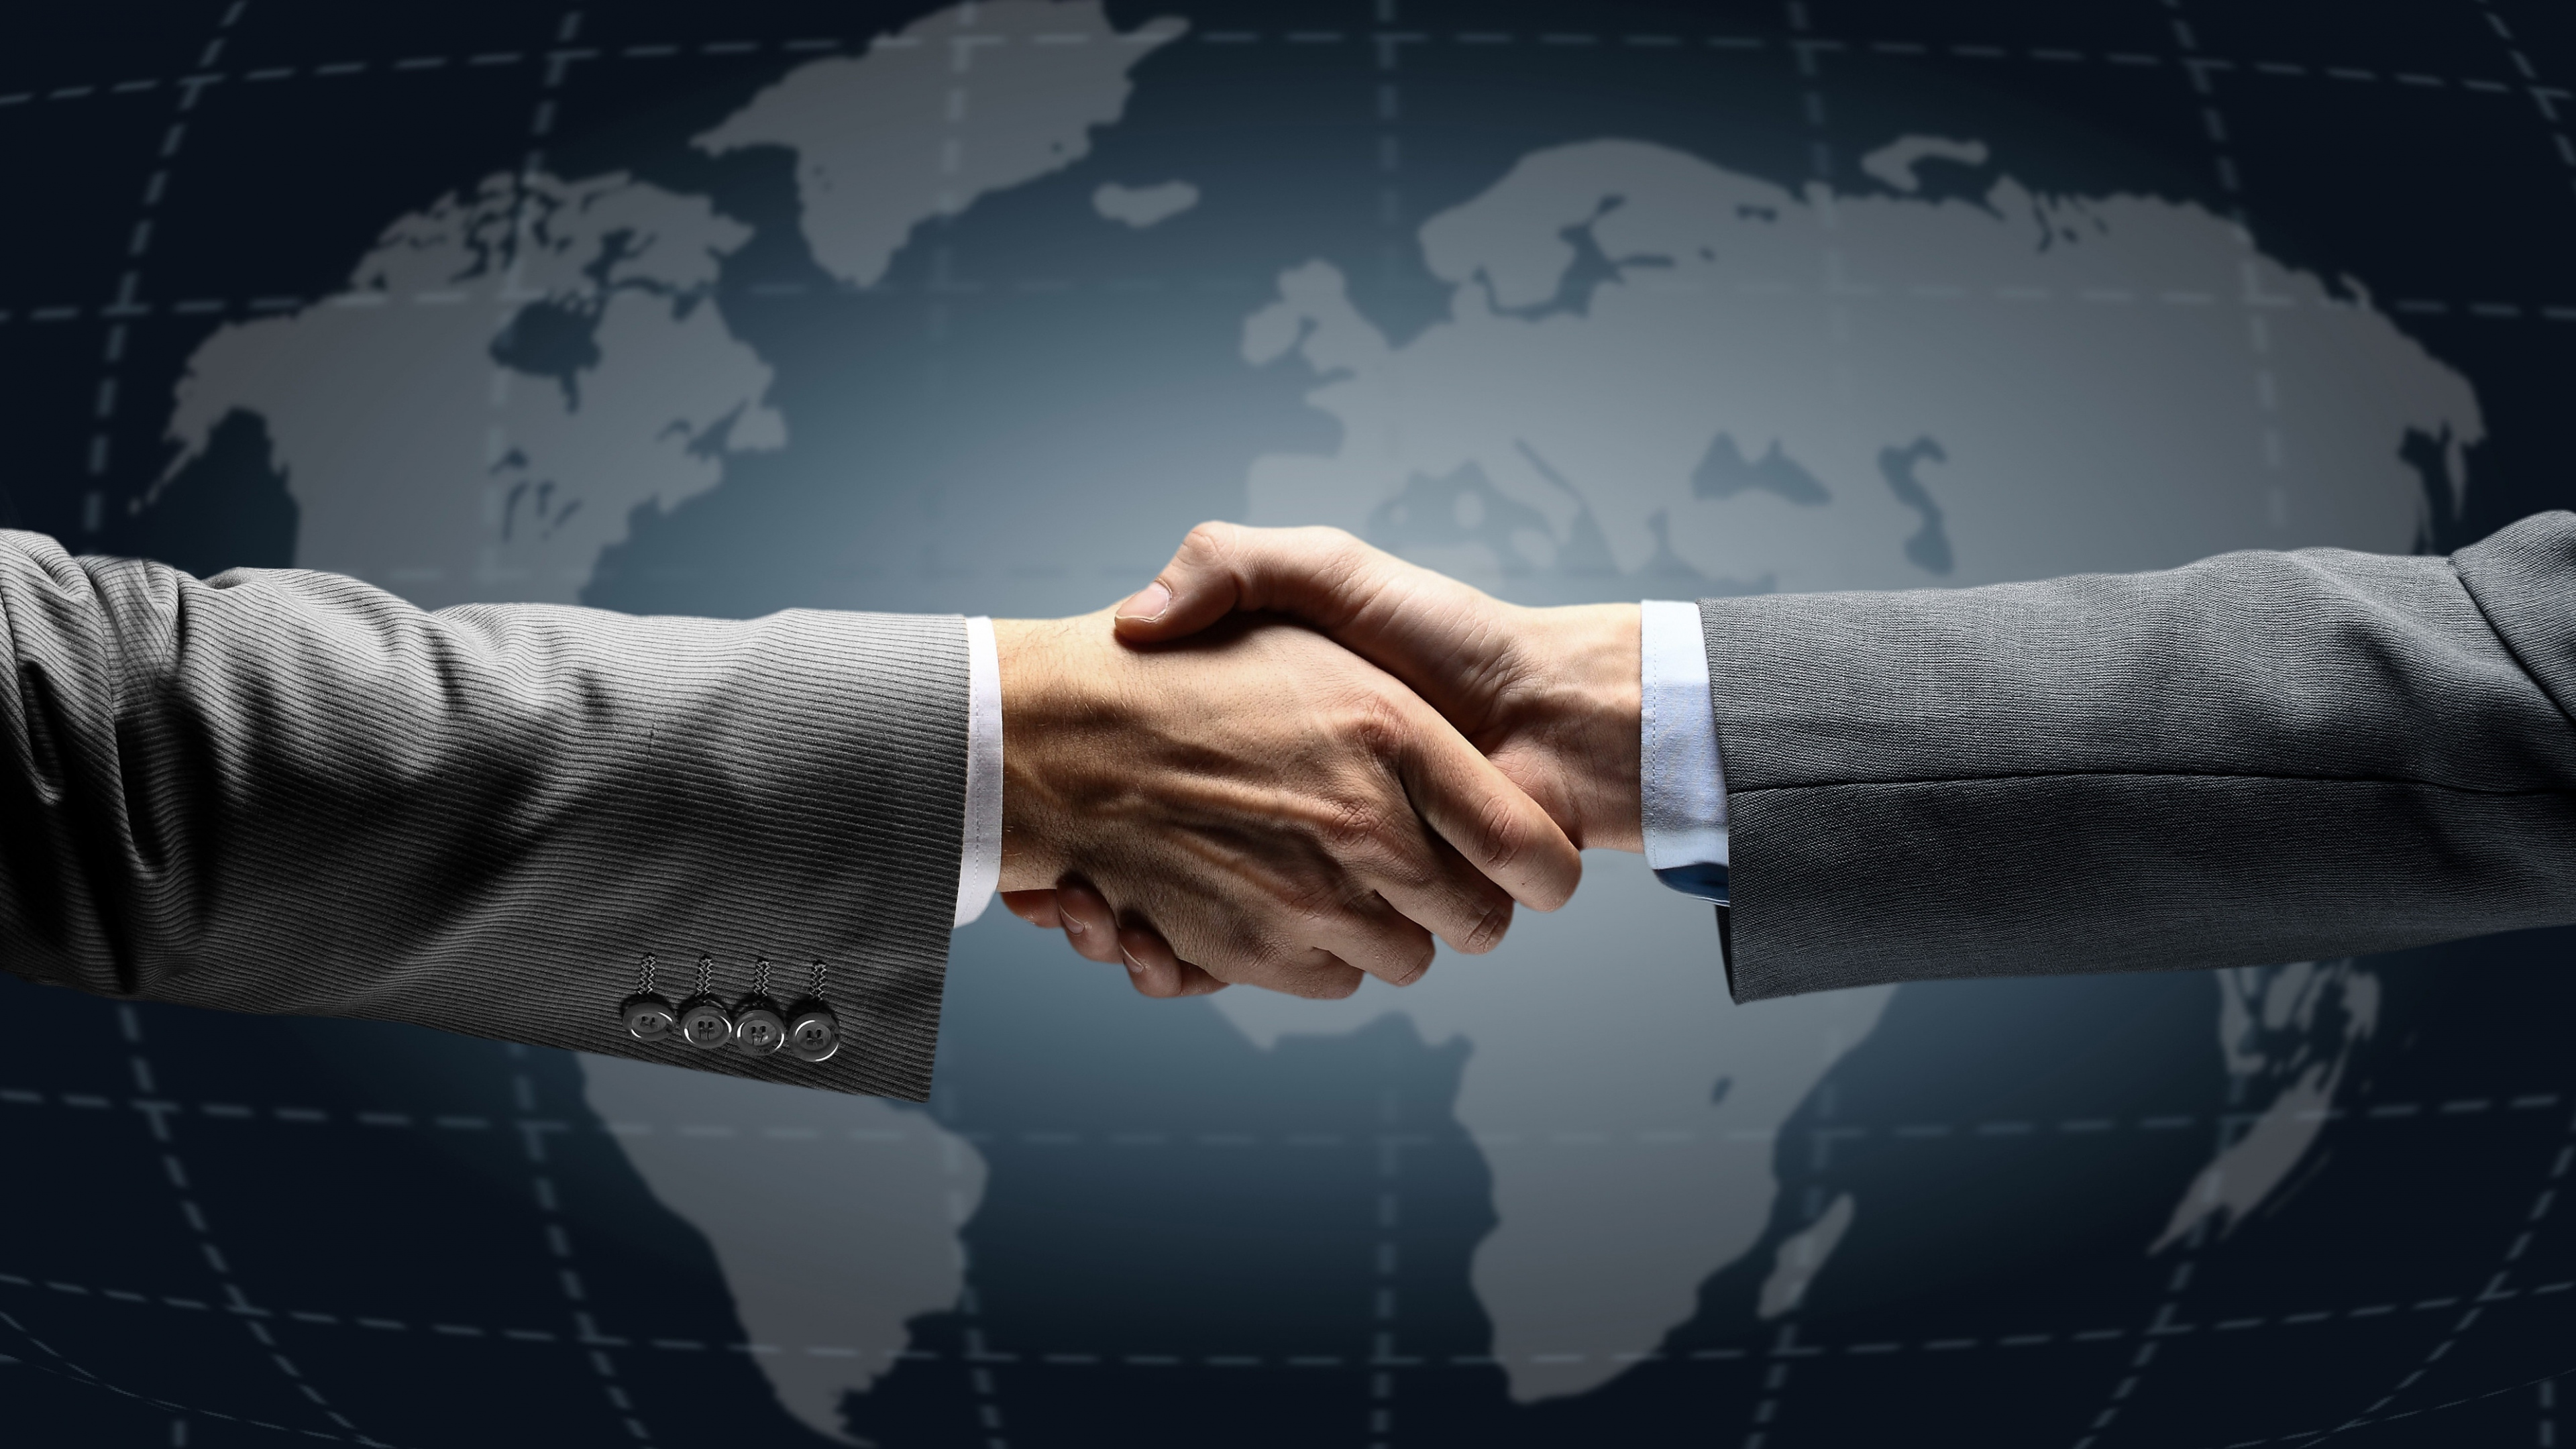 men_shaking_hands_agreement_meeting_80507_3840x2160